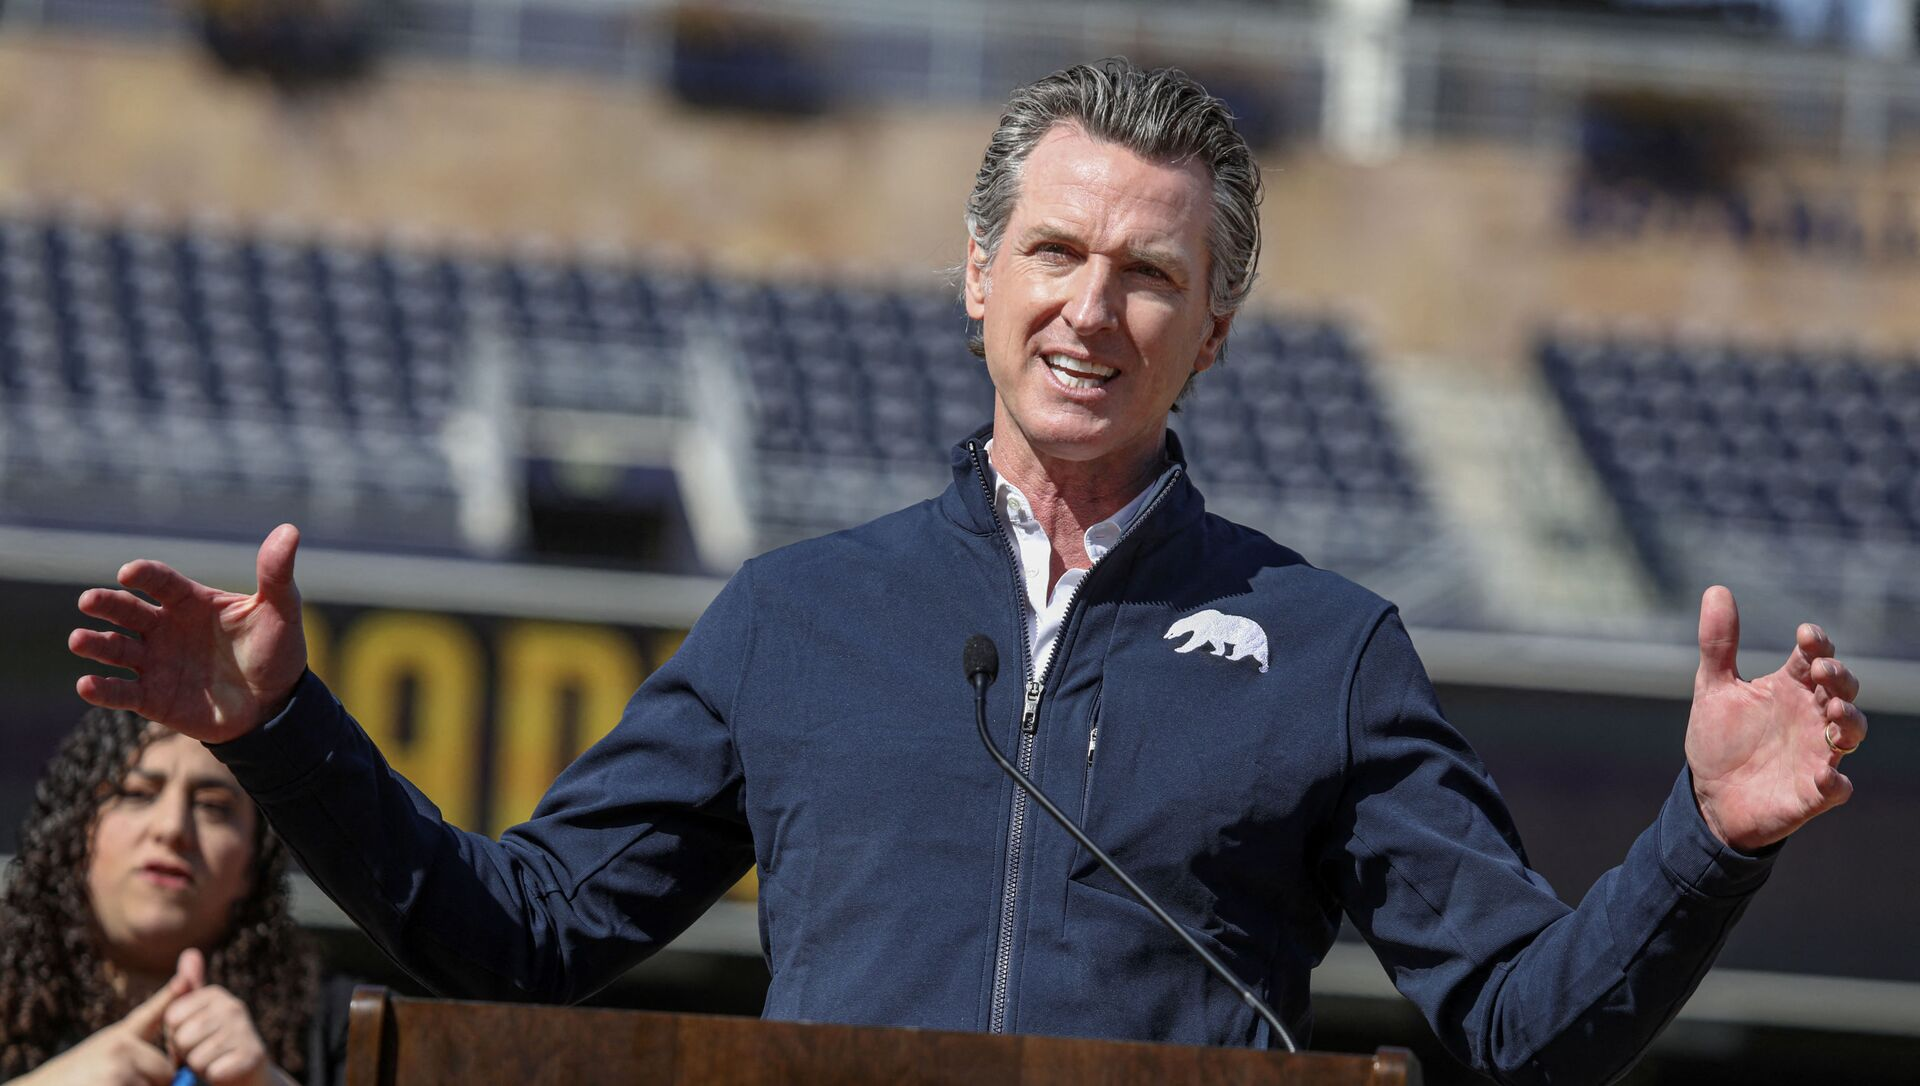 California Governor Gavin Newsom speaks to members of the media during a press conference at Petco Park, February 8, 2021 in San Diego, California, during a visit to the Petco Park Vaccination Supersite. - The Petco Park Vaccination Supersite, which is hosted in a parking lot next to the ballpark, is a partnership between San Diego County, the San Diego Padres baseball team and UC San Diego Health and has capacity to dole out about 5,000 COVID-19 vaccines per day. - Sputnik International, 1920, 16.02.2021